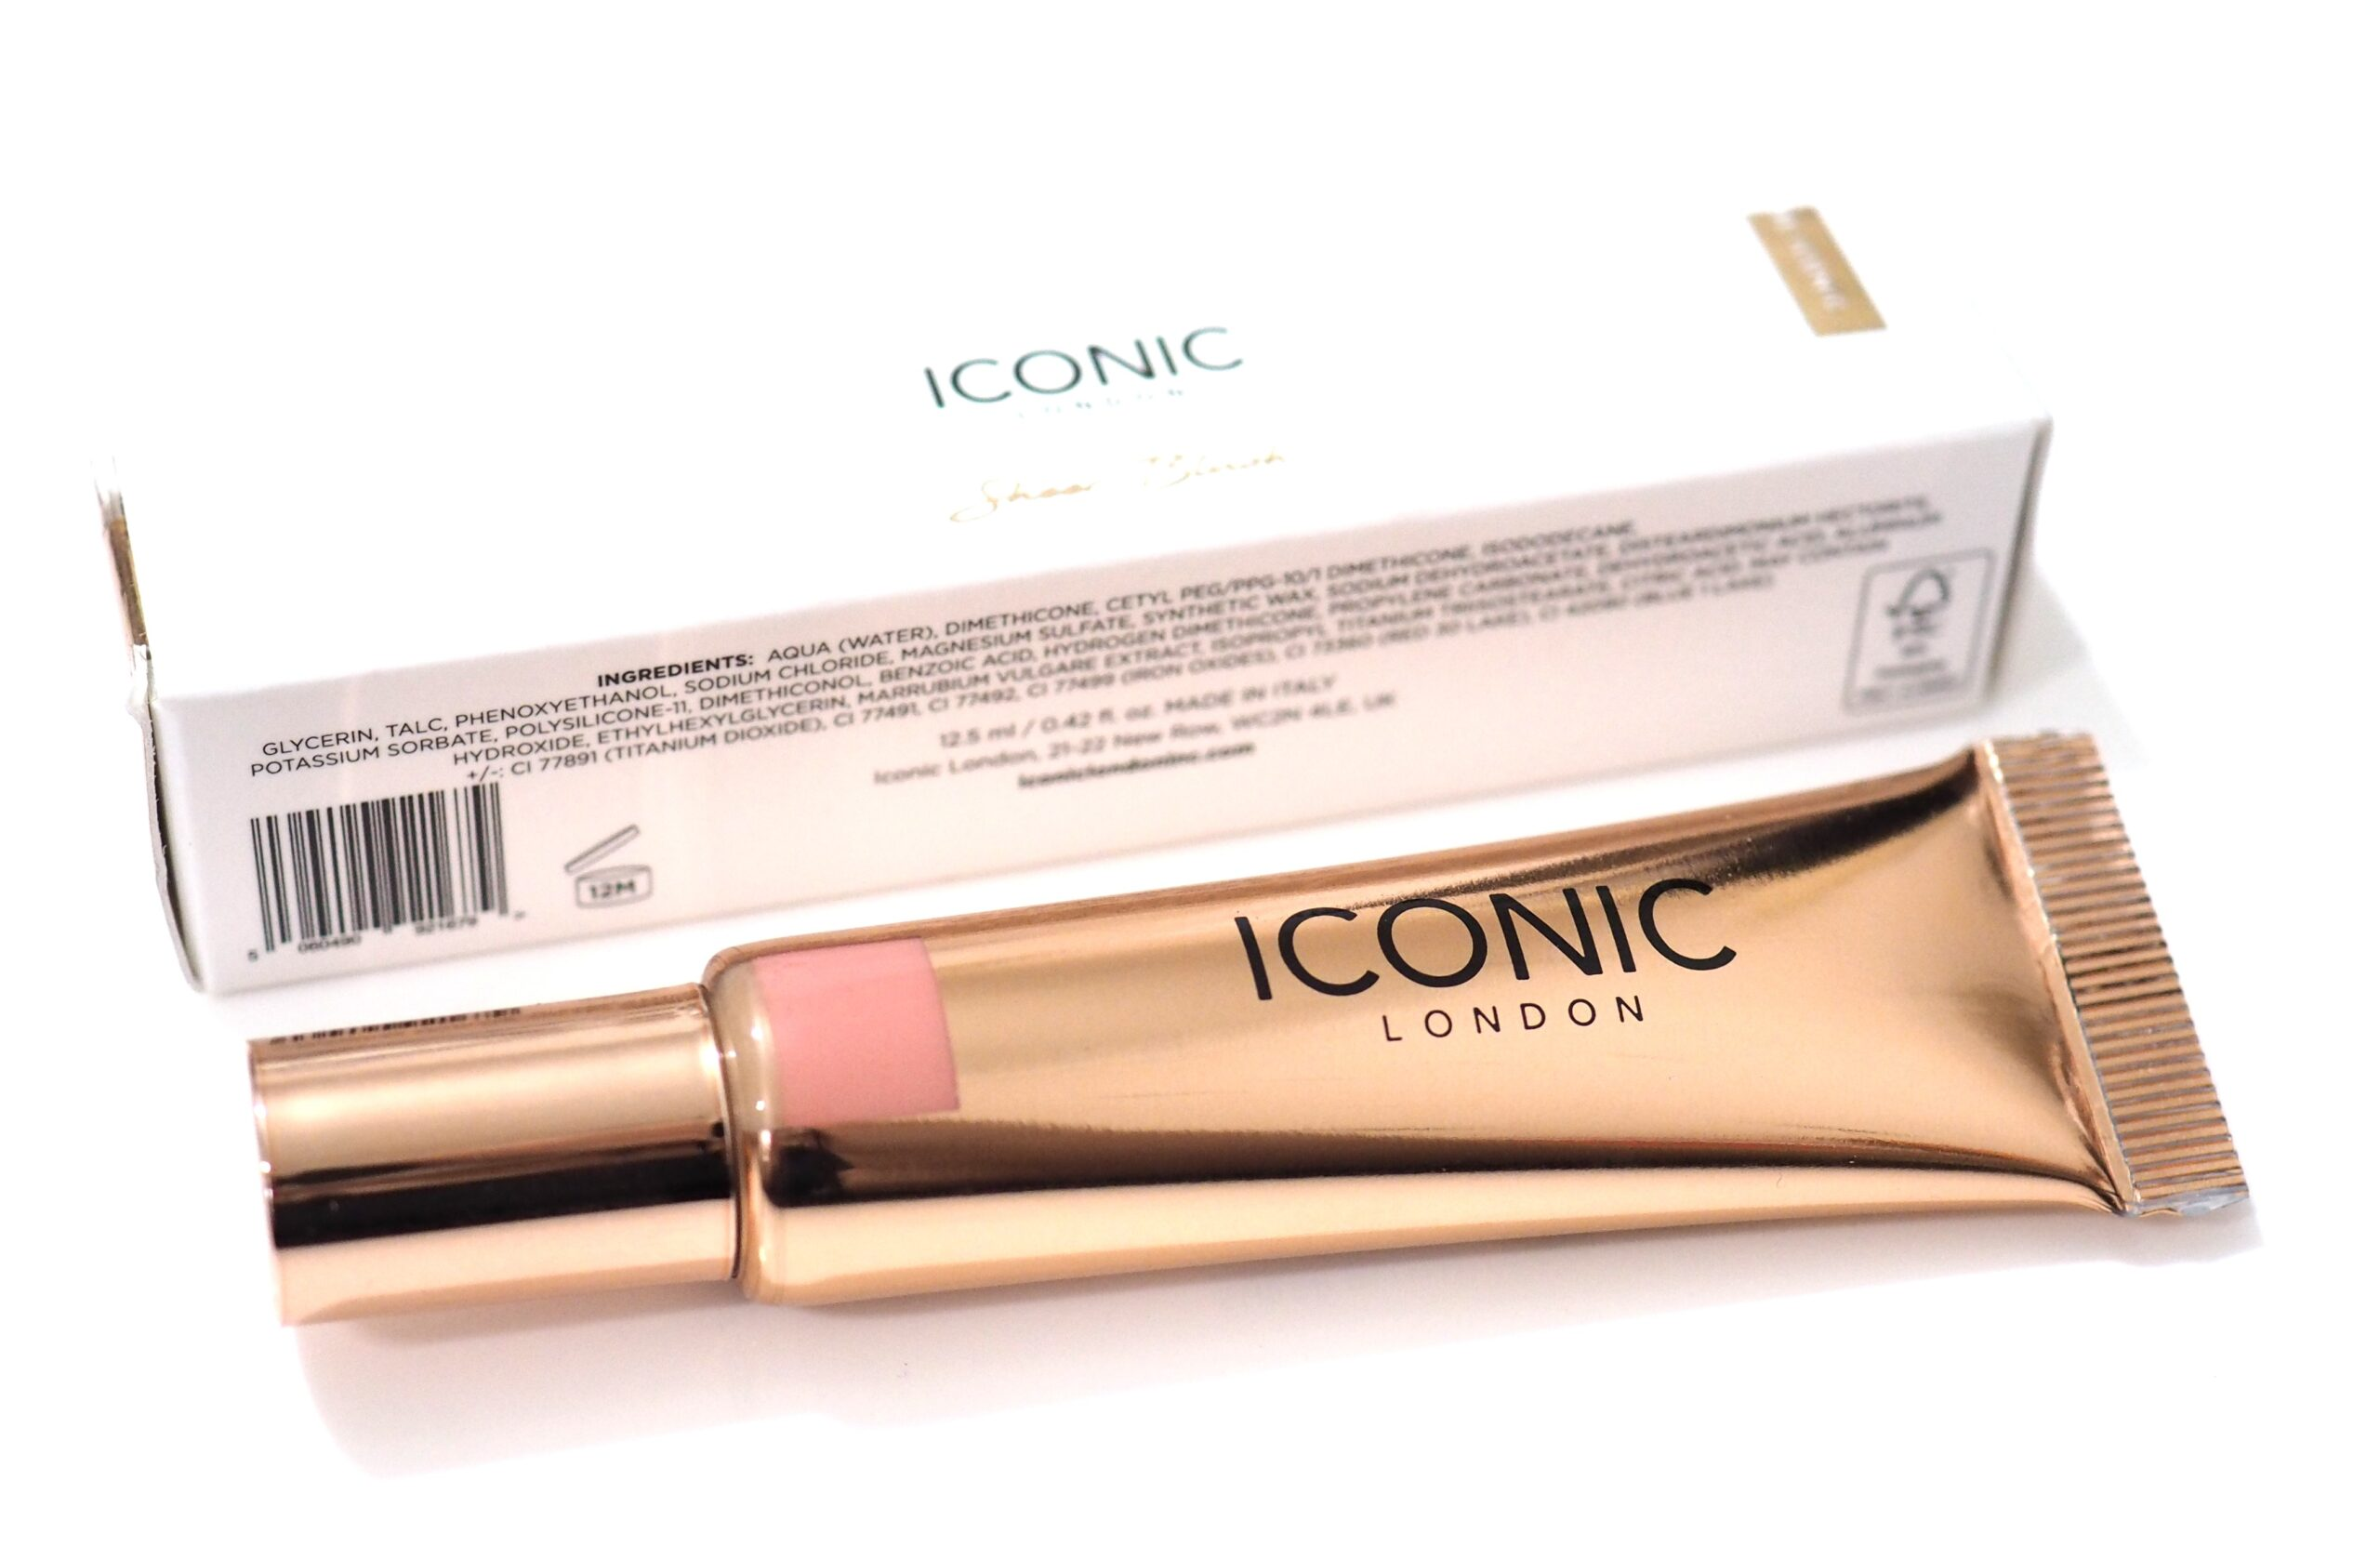 Iconic London Sheer Blush Review / Swatches